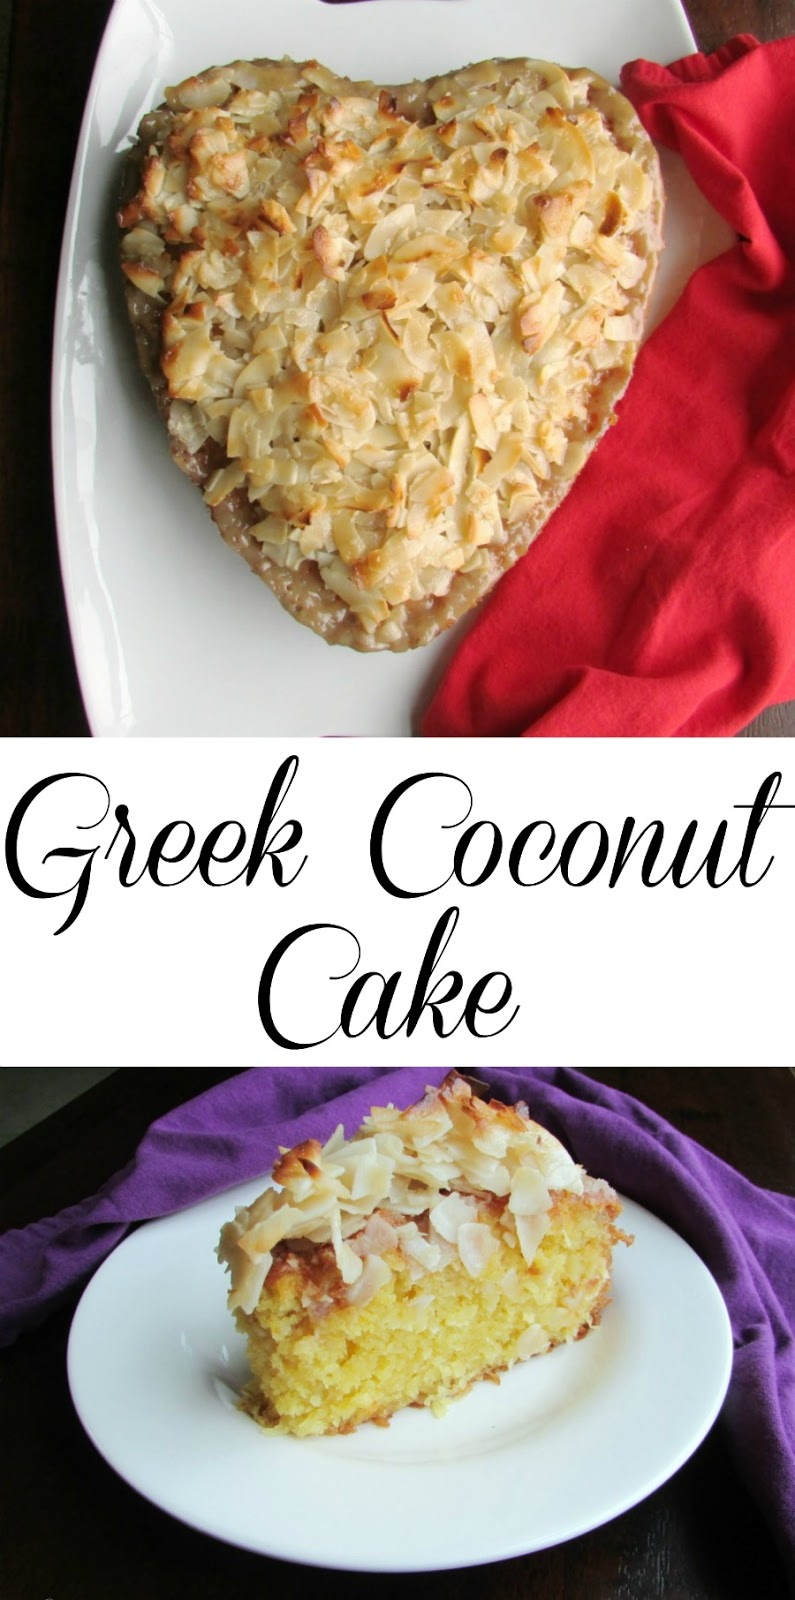 This syrup soaked cake is LOADED with coconut and it is delicious, moist and full of flavor! Greek Coconut Cake is going to be a new favorite!